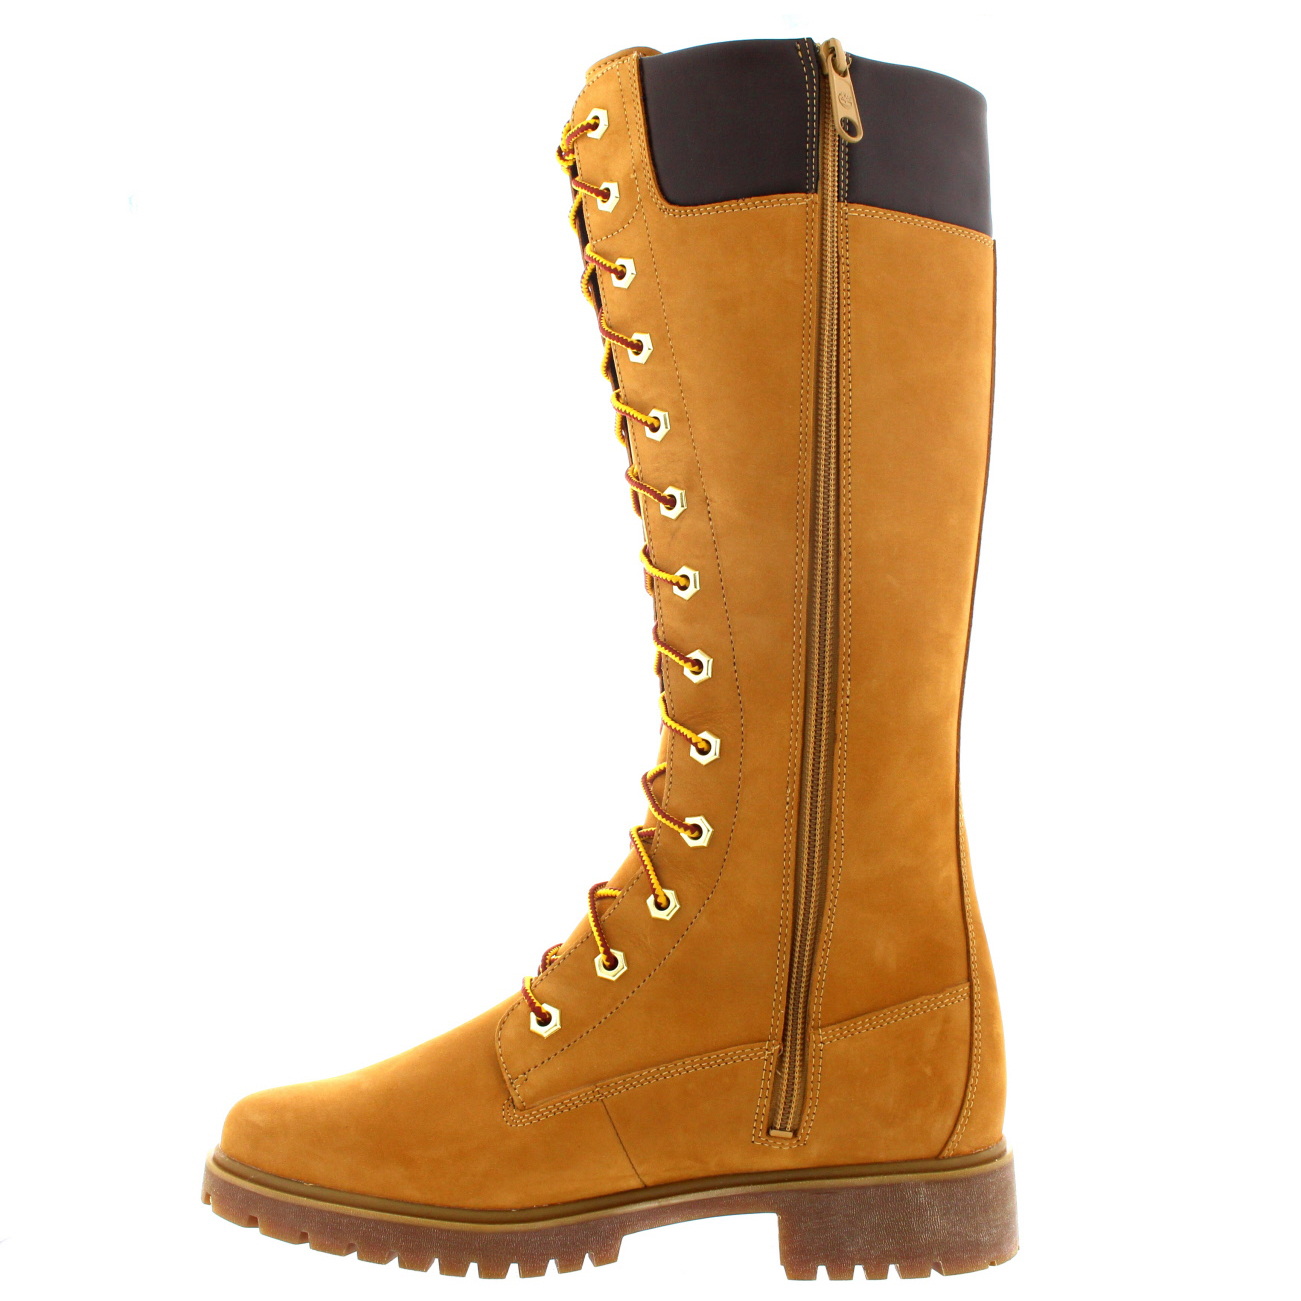 Awesome Timberland 14 Inch Premium WP KneeHigh Boot For Women  Yesboots